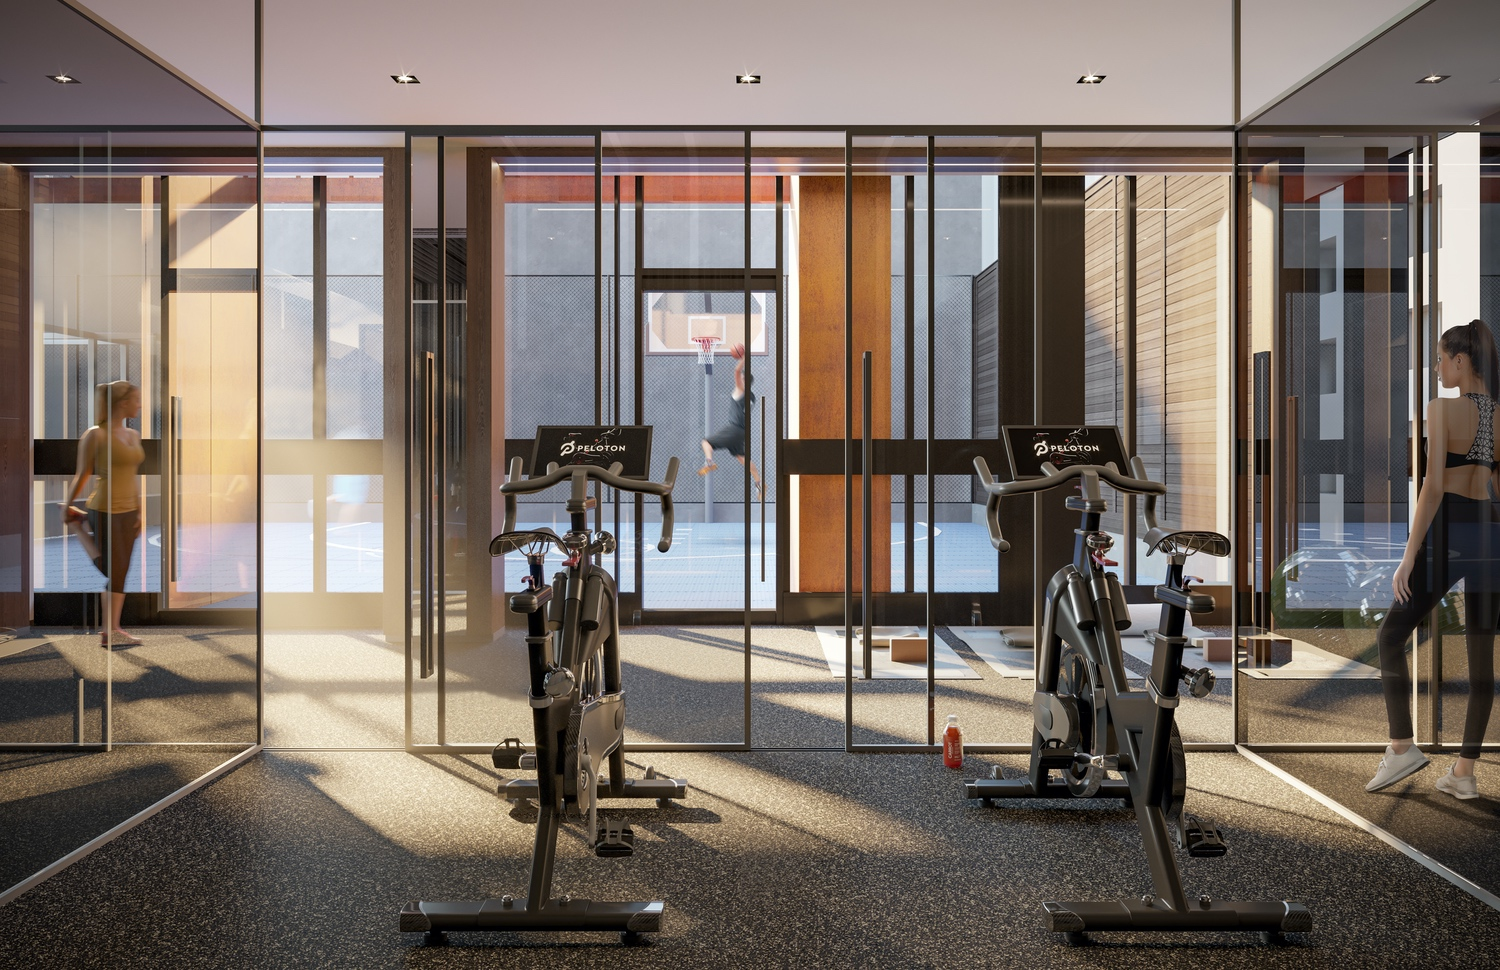 peloton bikes in the gym of 55 mercer condos